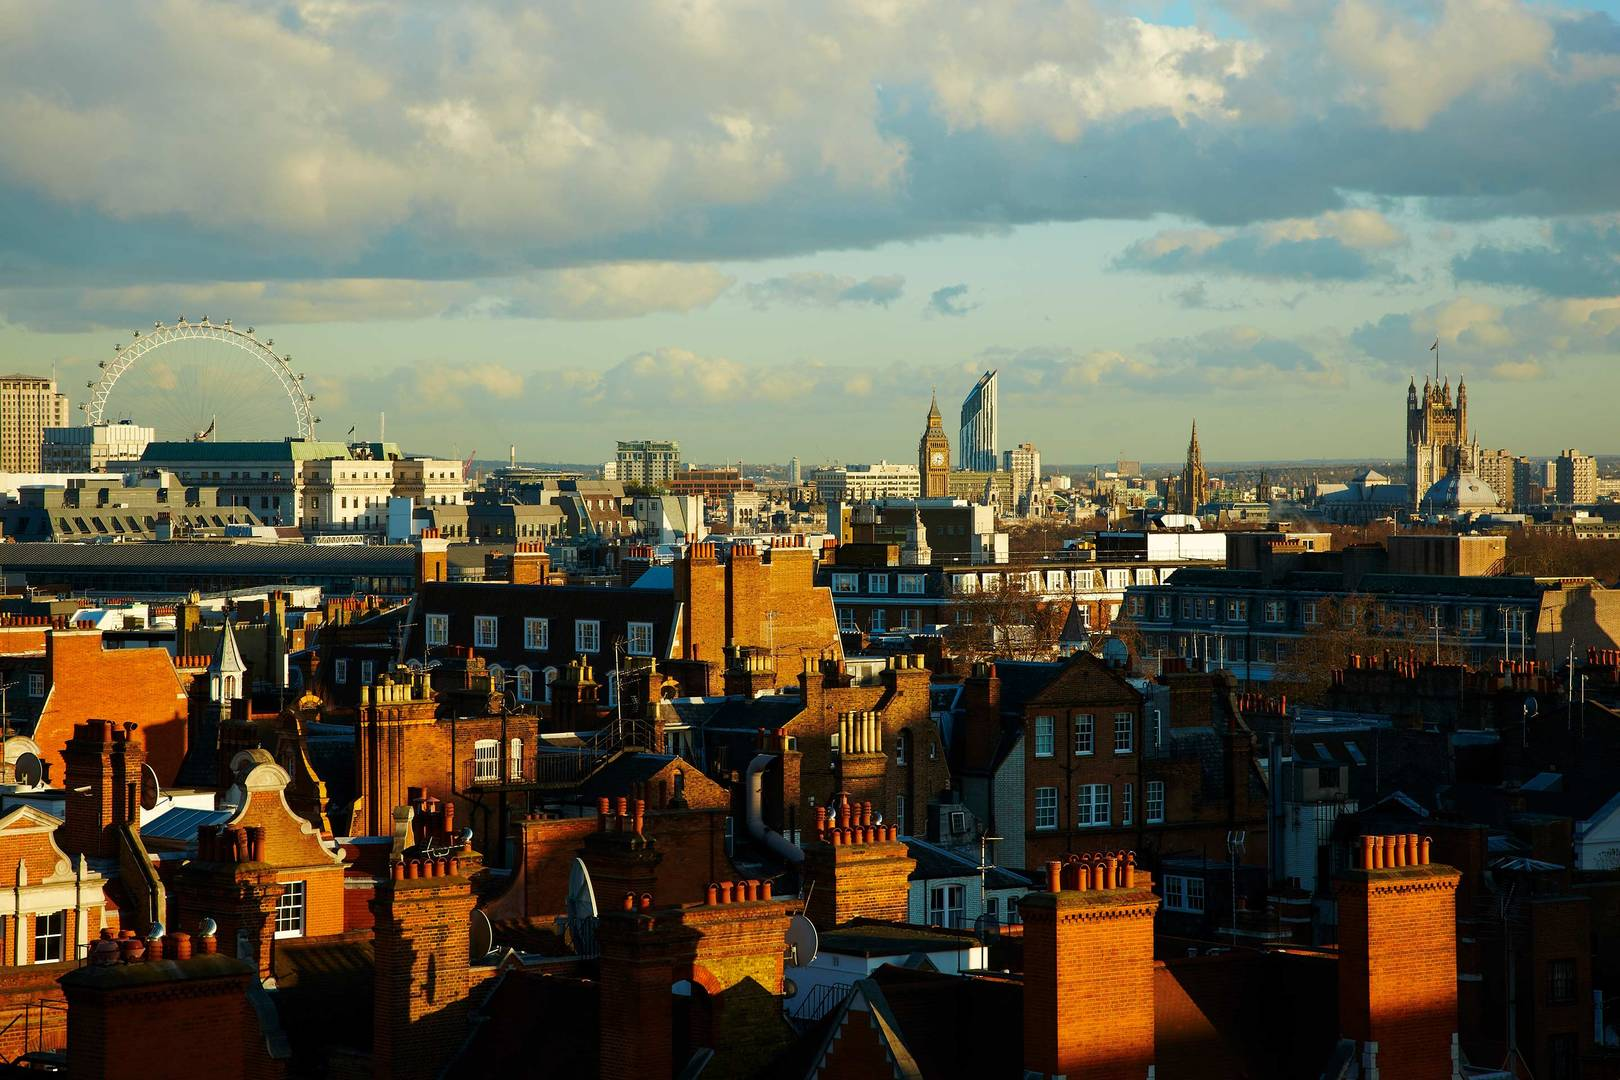 View of london city rooftops